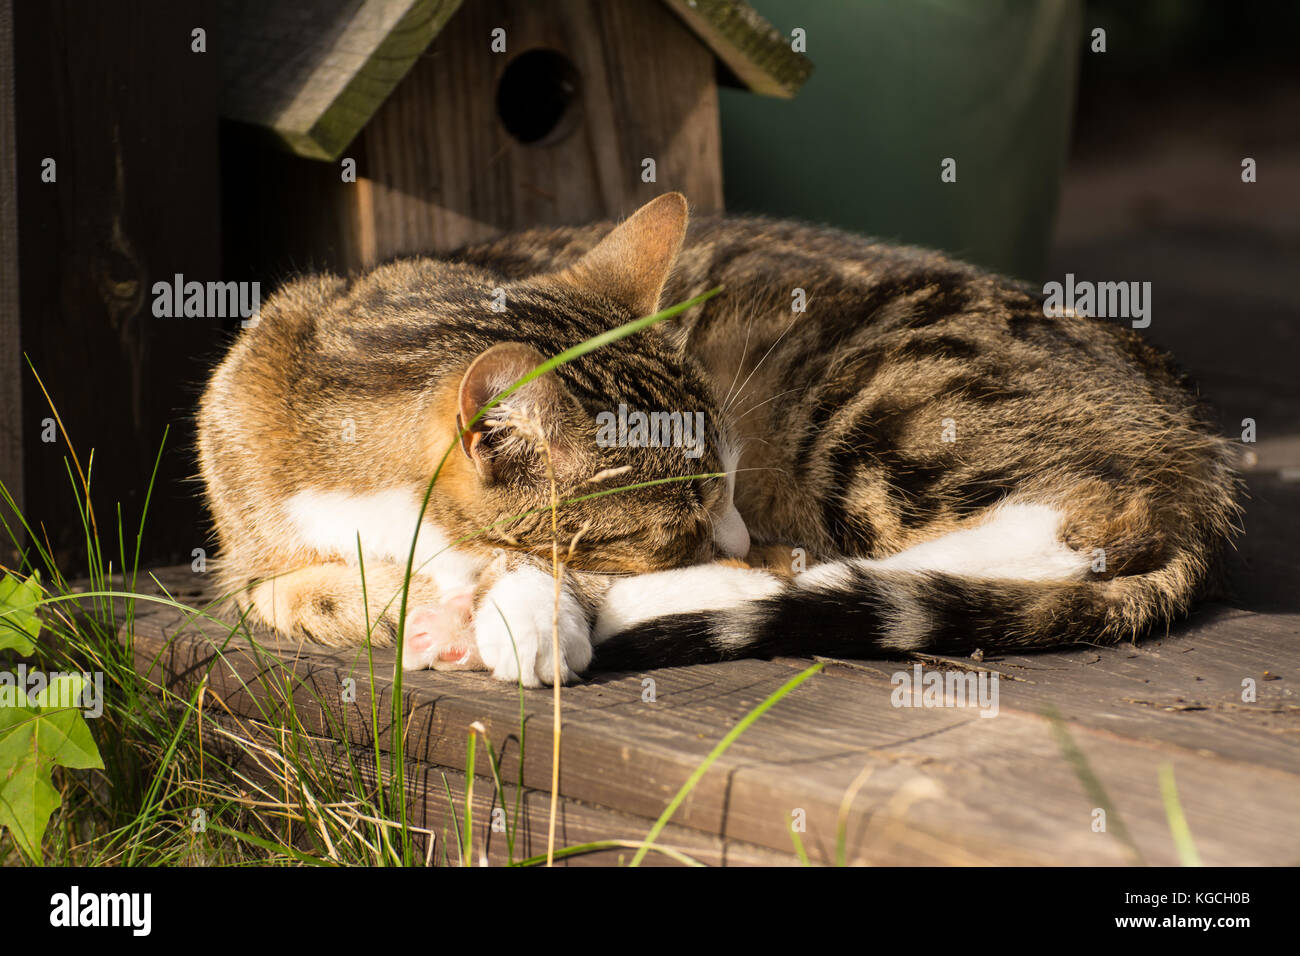 Cute Little Cat Curled Up, Resting In A Garden Shed